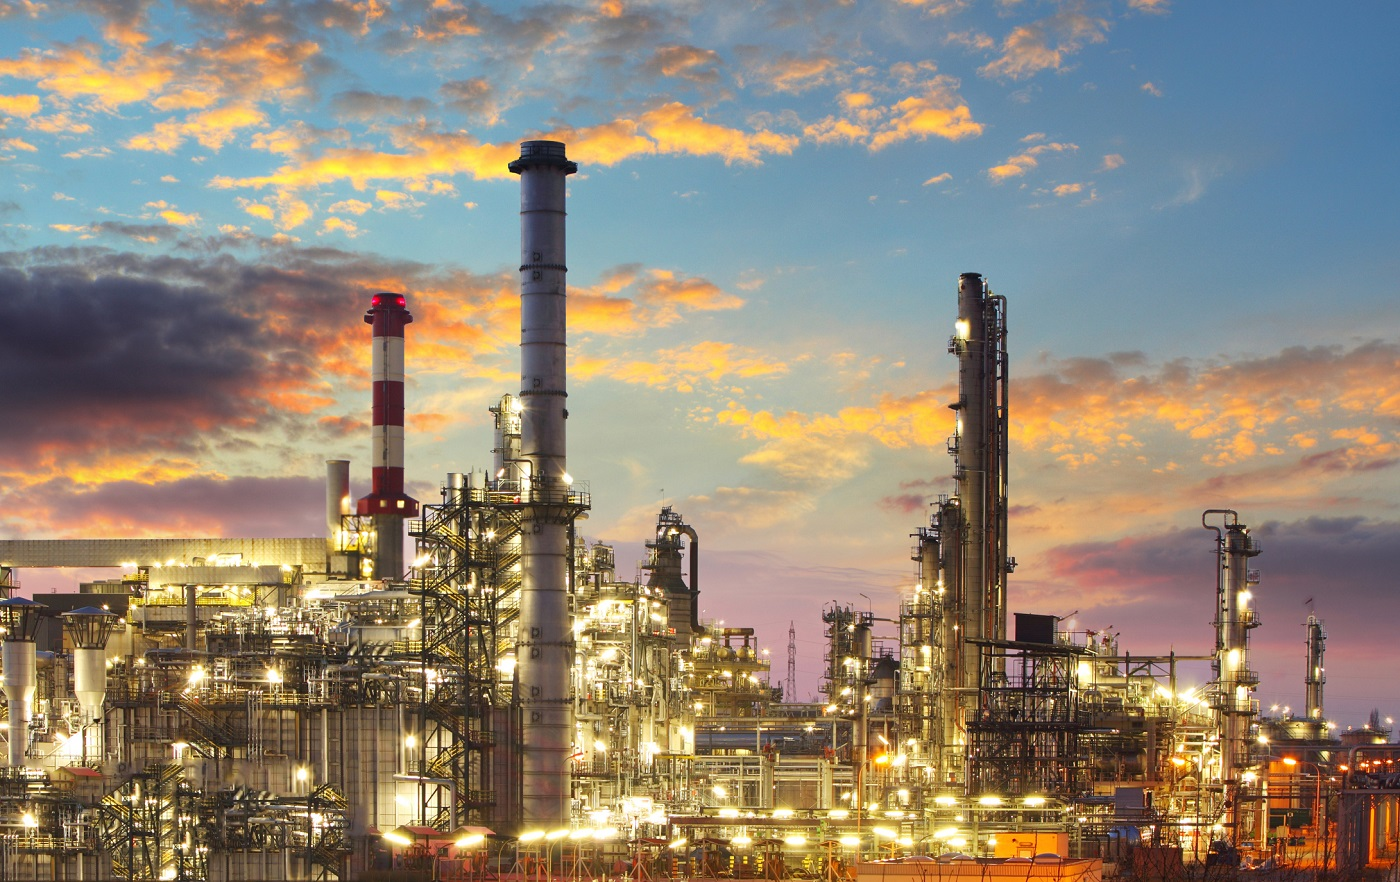 Five Essentials For An Effective IIoT Strategy TechNative